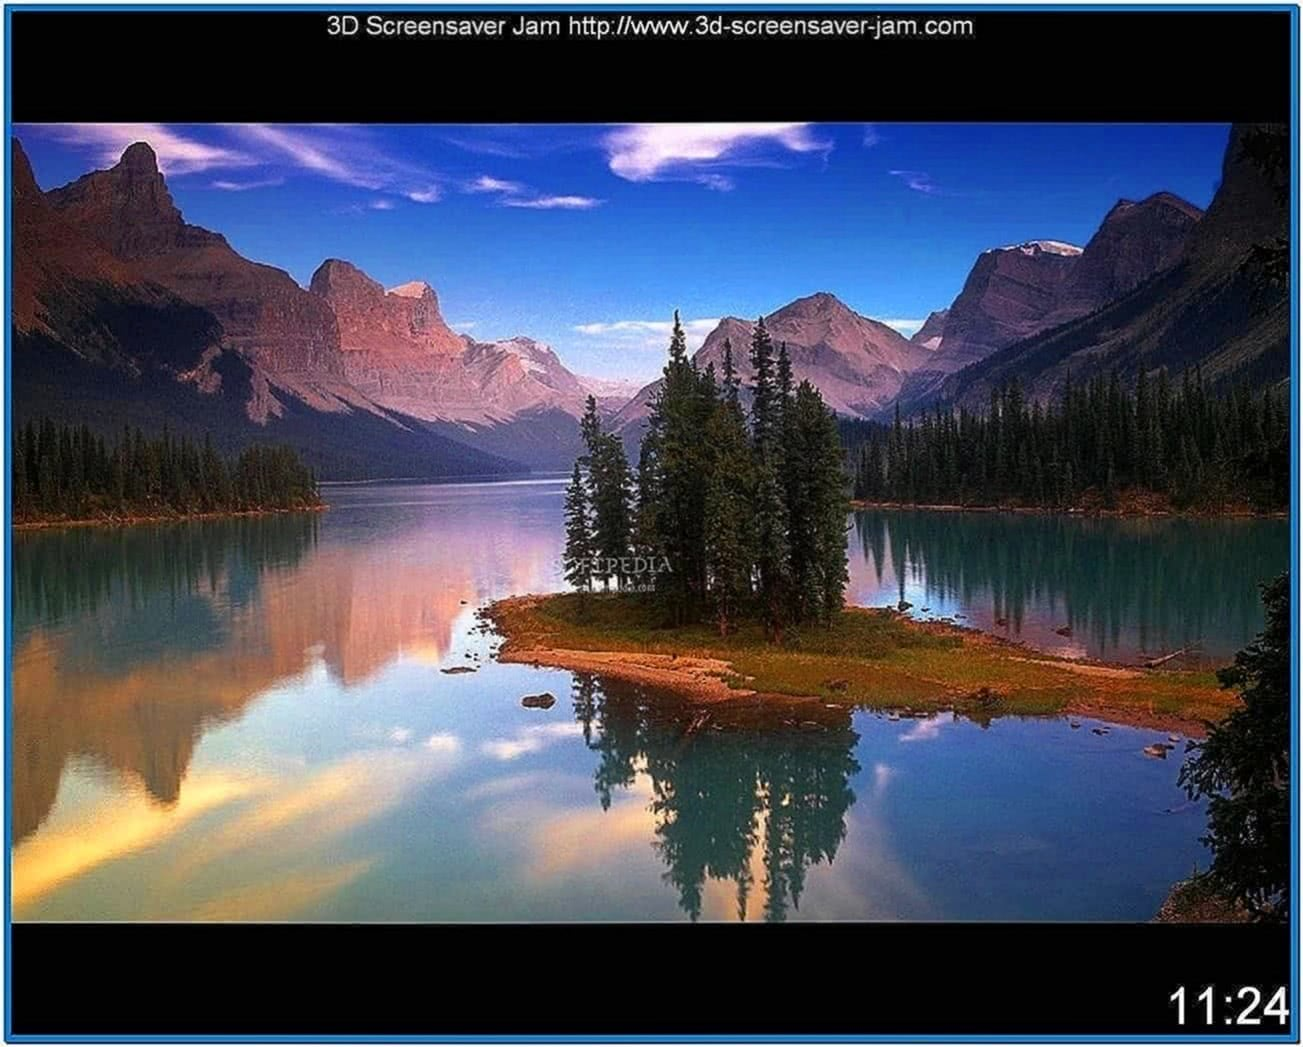 Best screensavers windows 7 - Download free